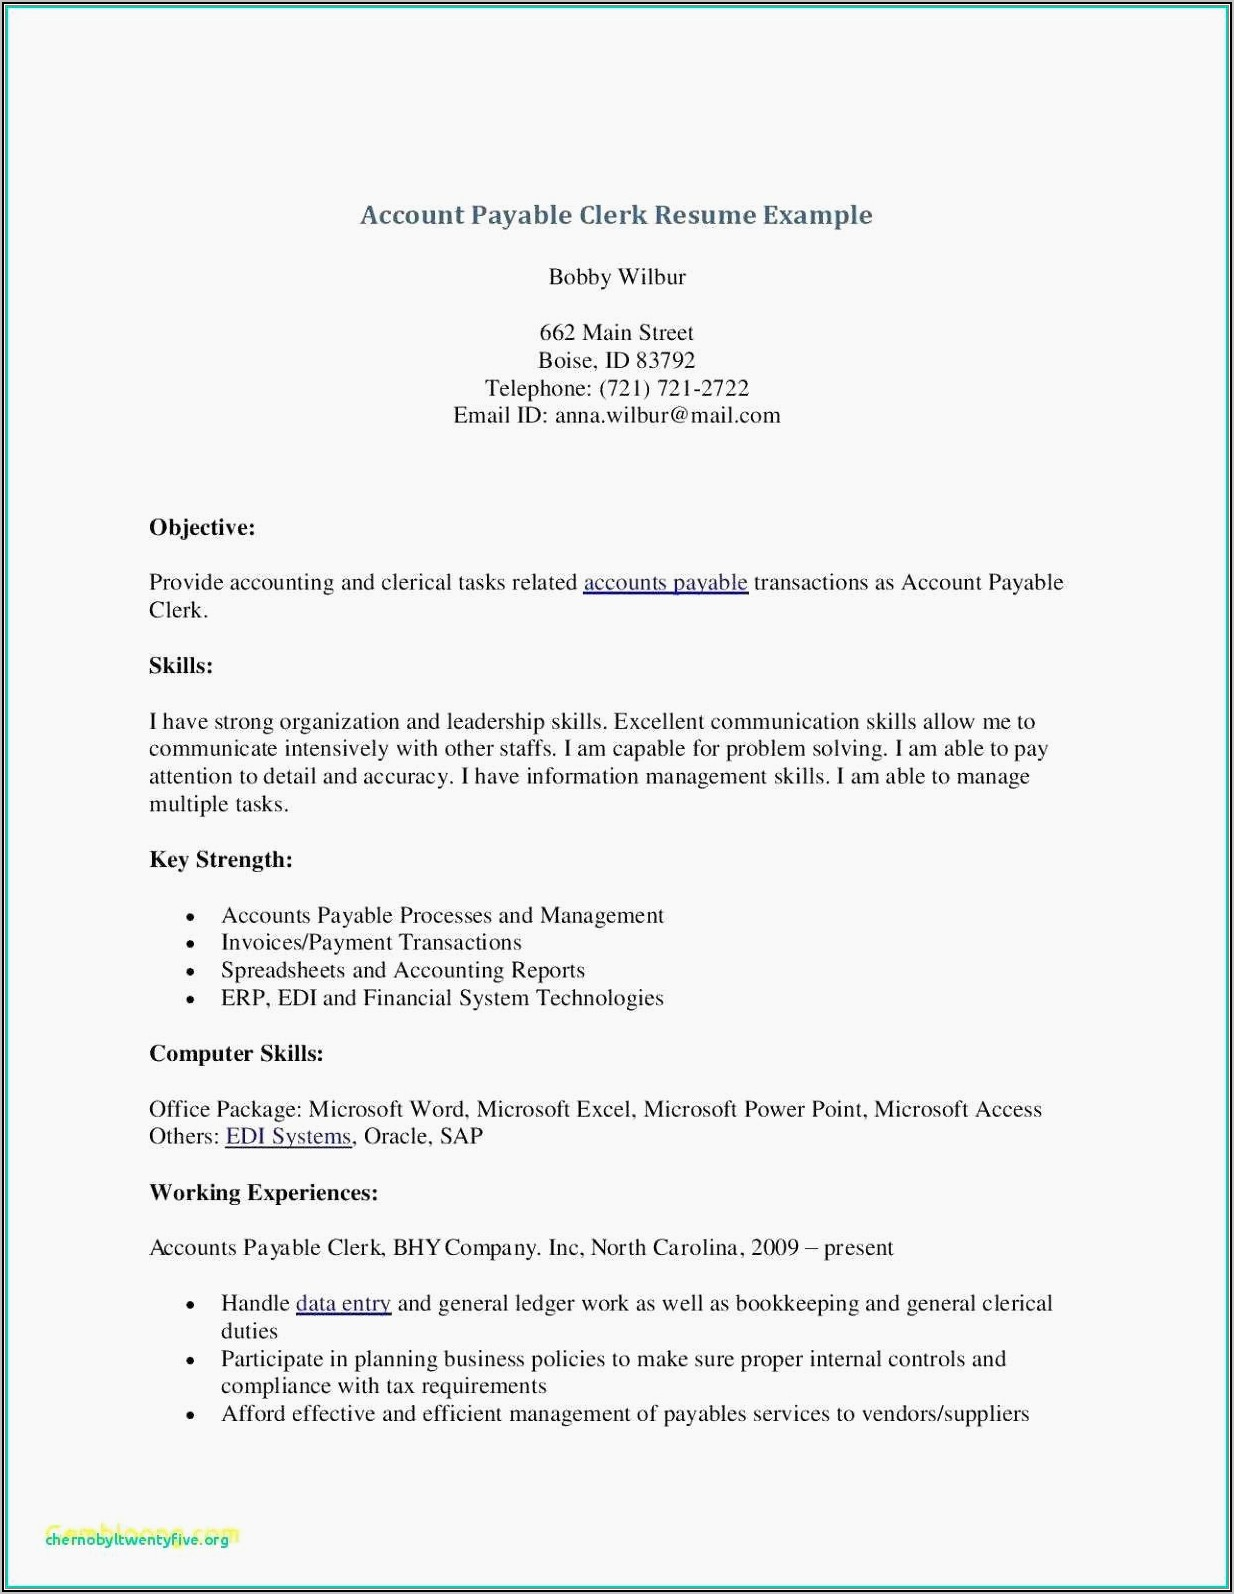 Resume Samples For Accounts Payable Manager